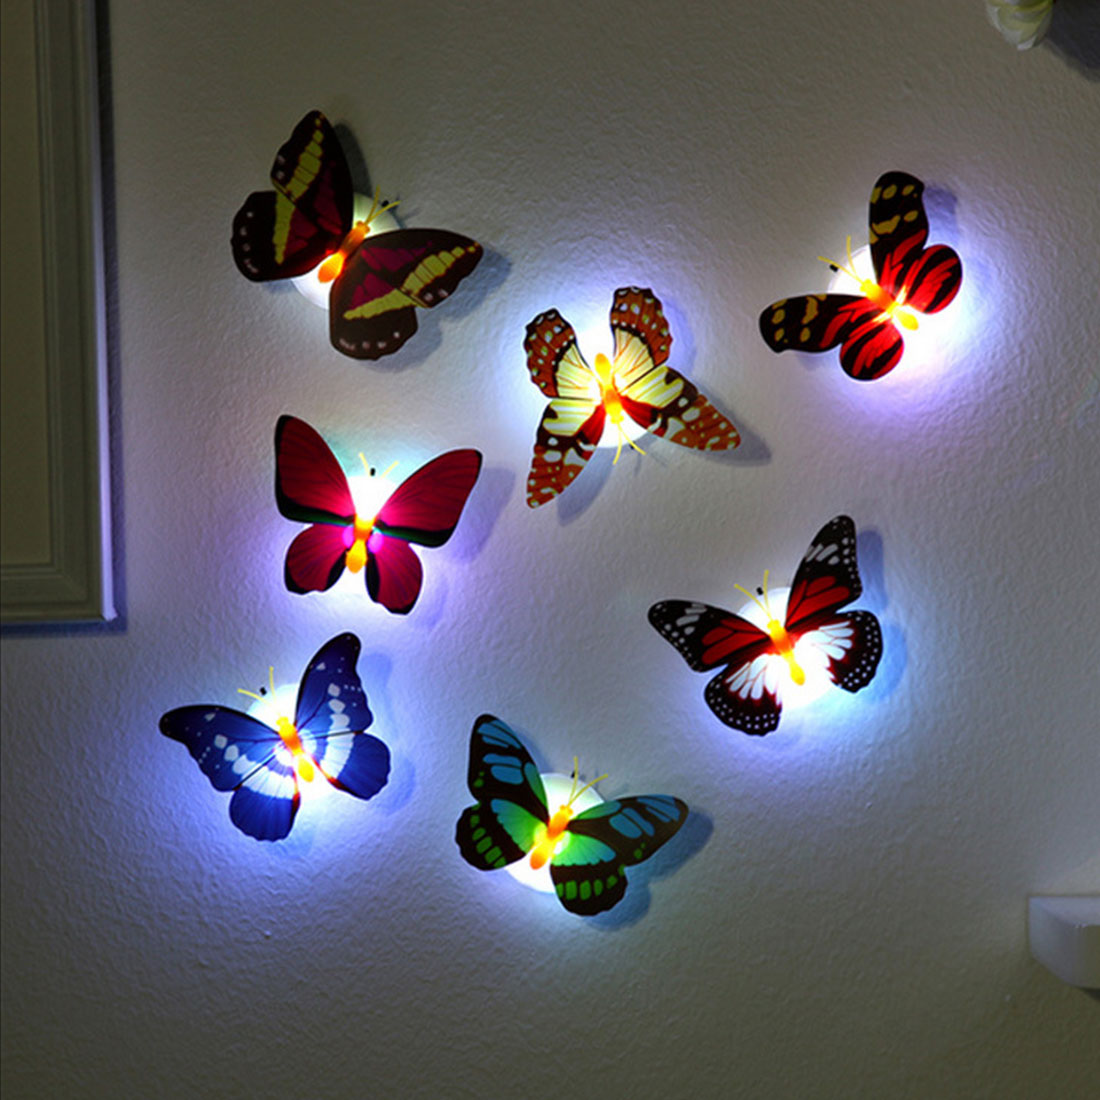 Practical Light Night Lamp With Different Color Butterfly Indoor Light With Suction Pad Lighting Accessories/Randowcolor